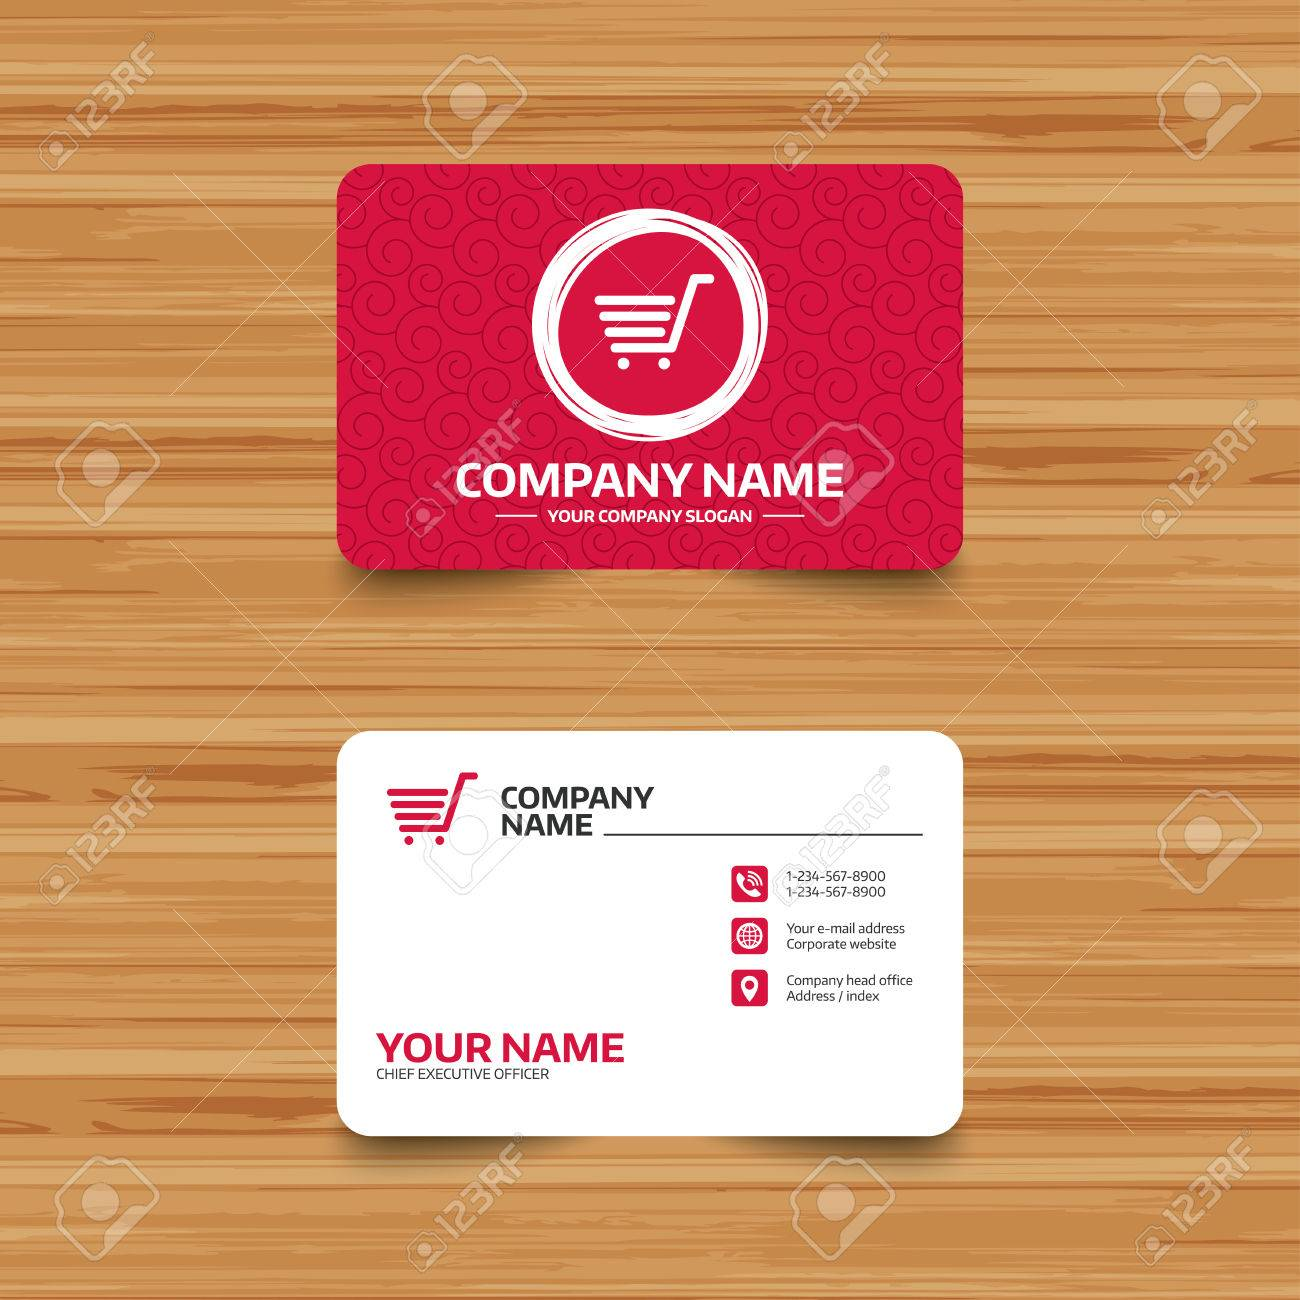 Business Card Template With Texture Shopping Cart Sign Icon Royalty Free Cliparts Vectors And Stock Illustration Image 70095158